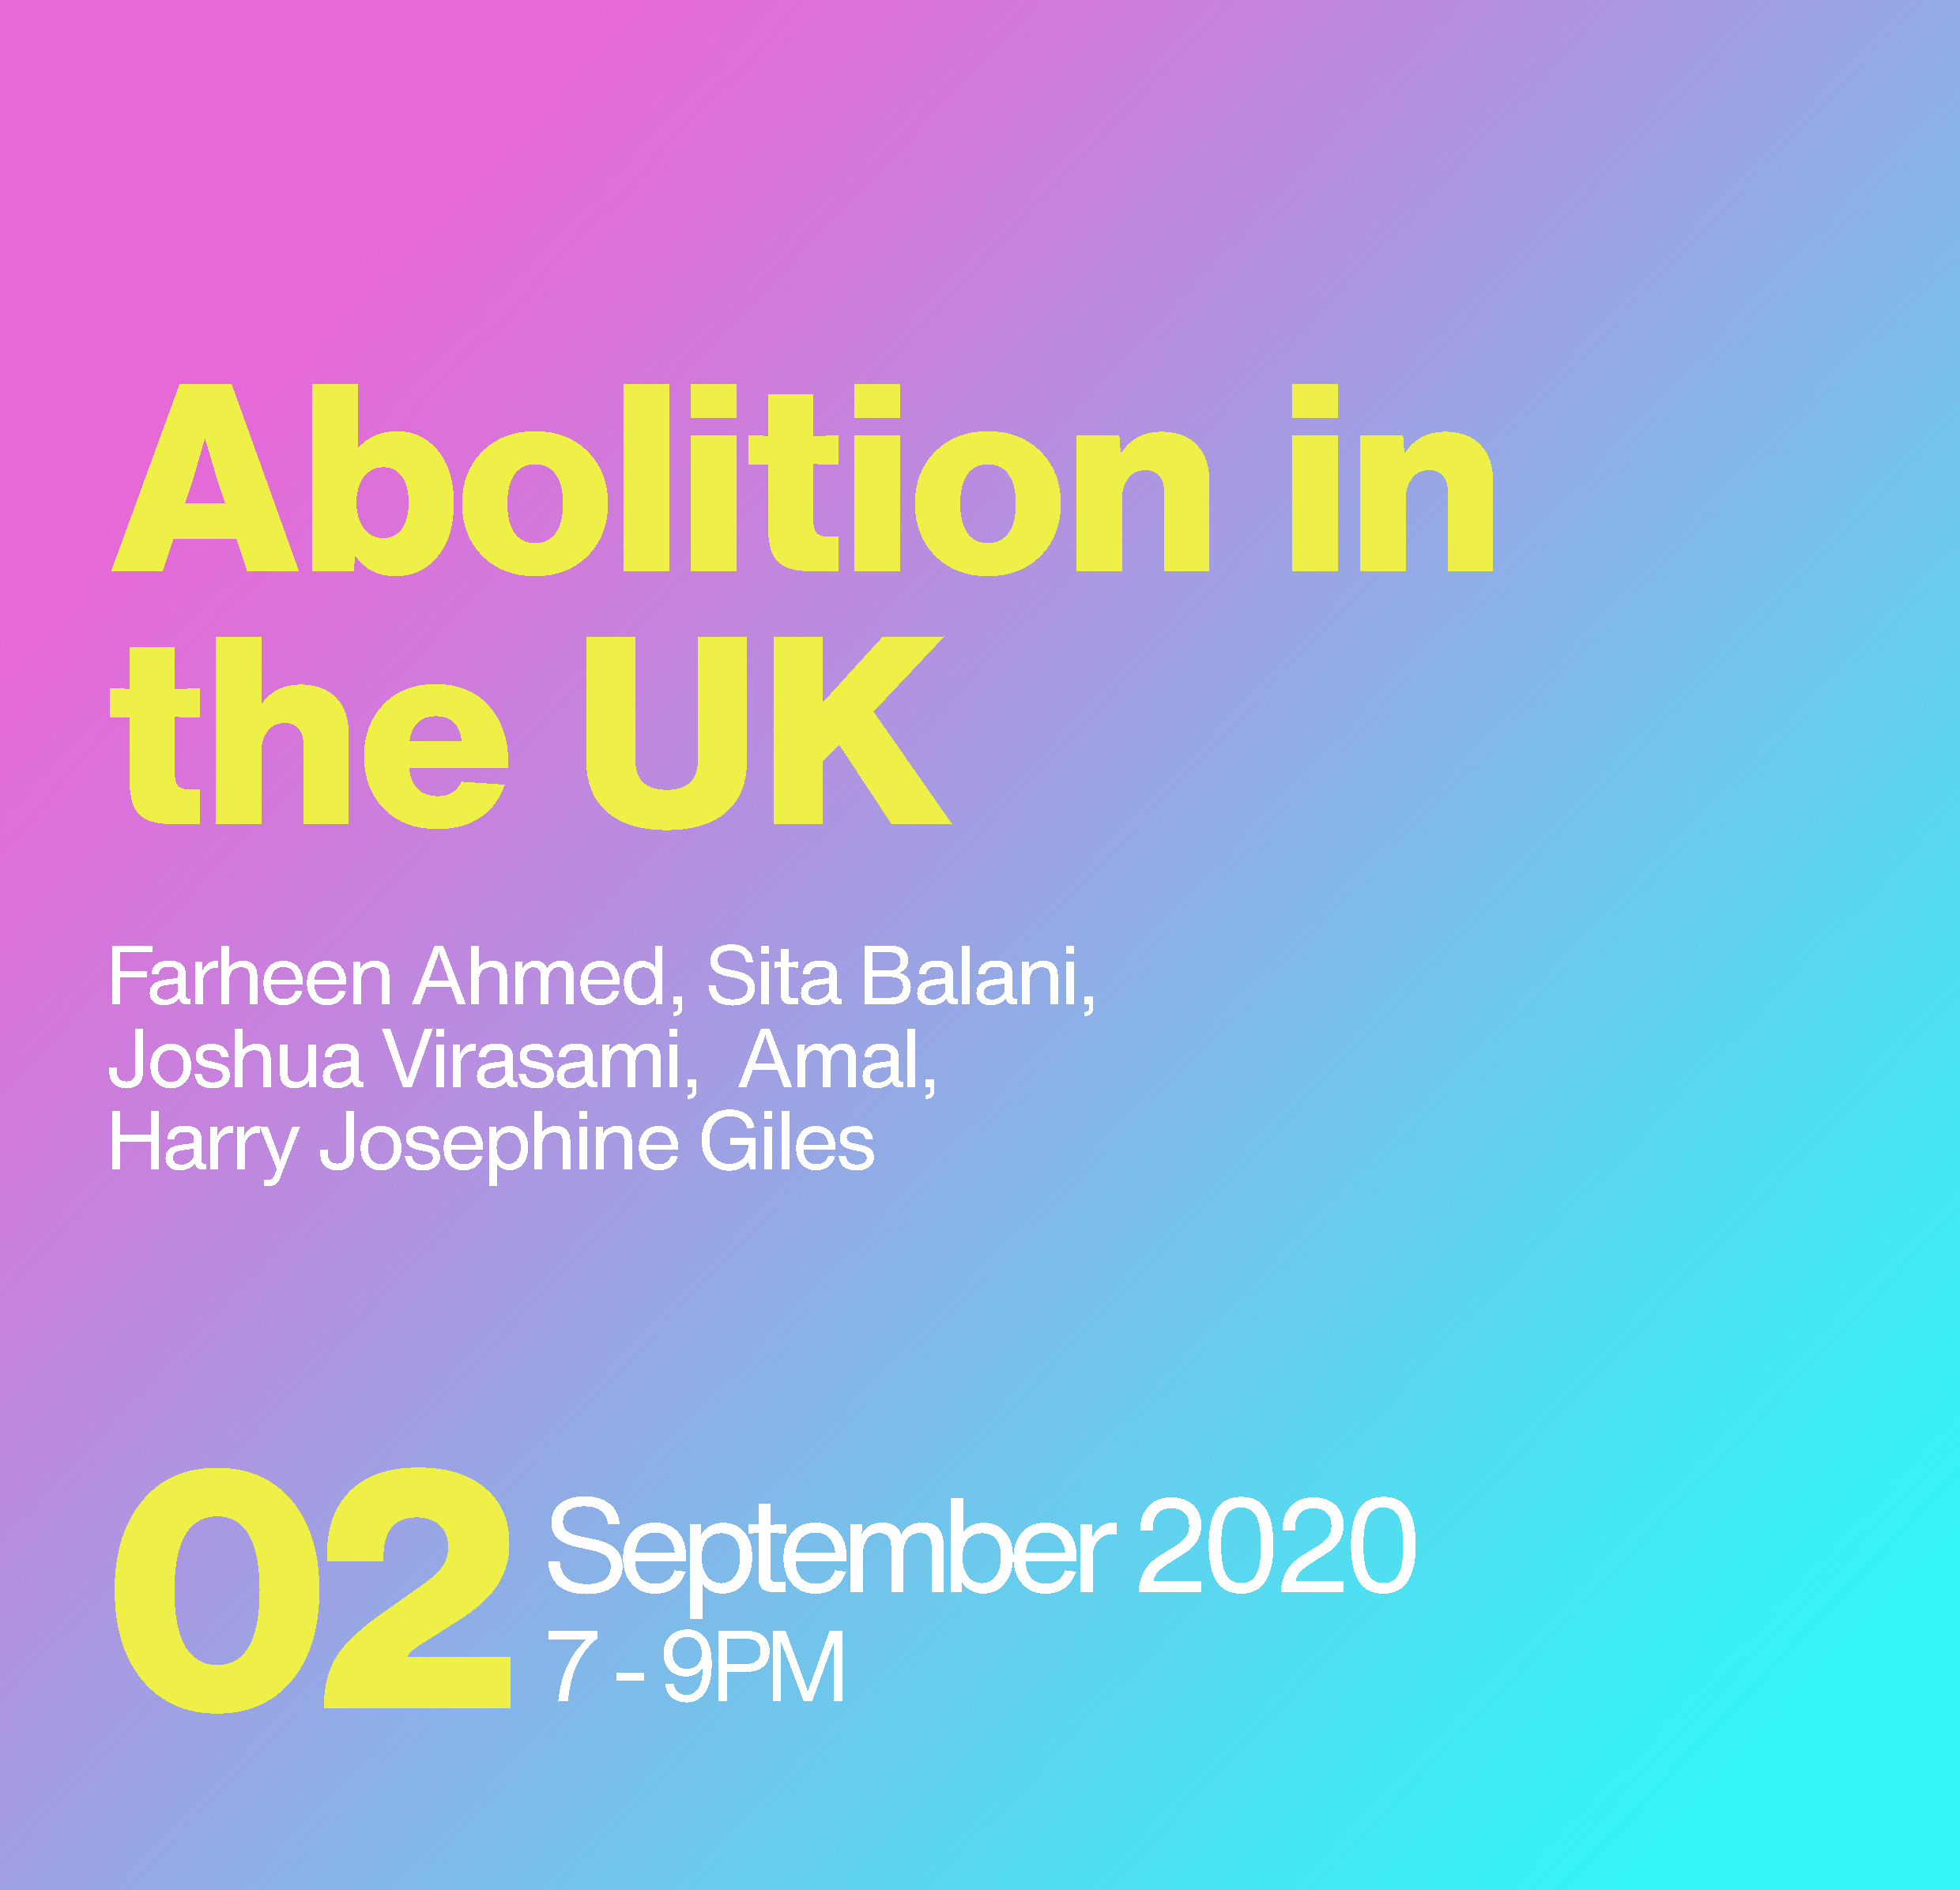 Abolition in the UK Event poster